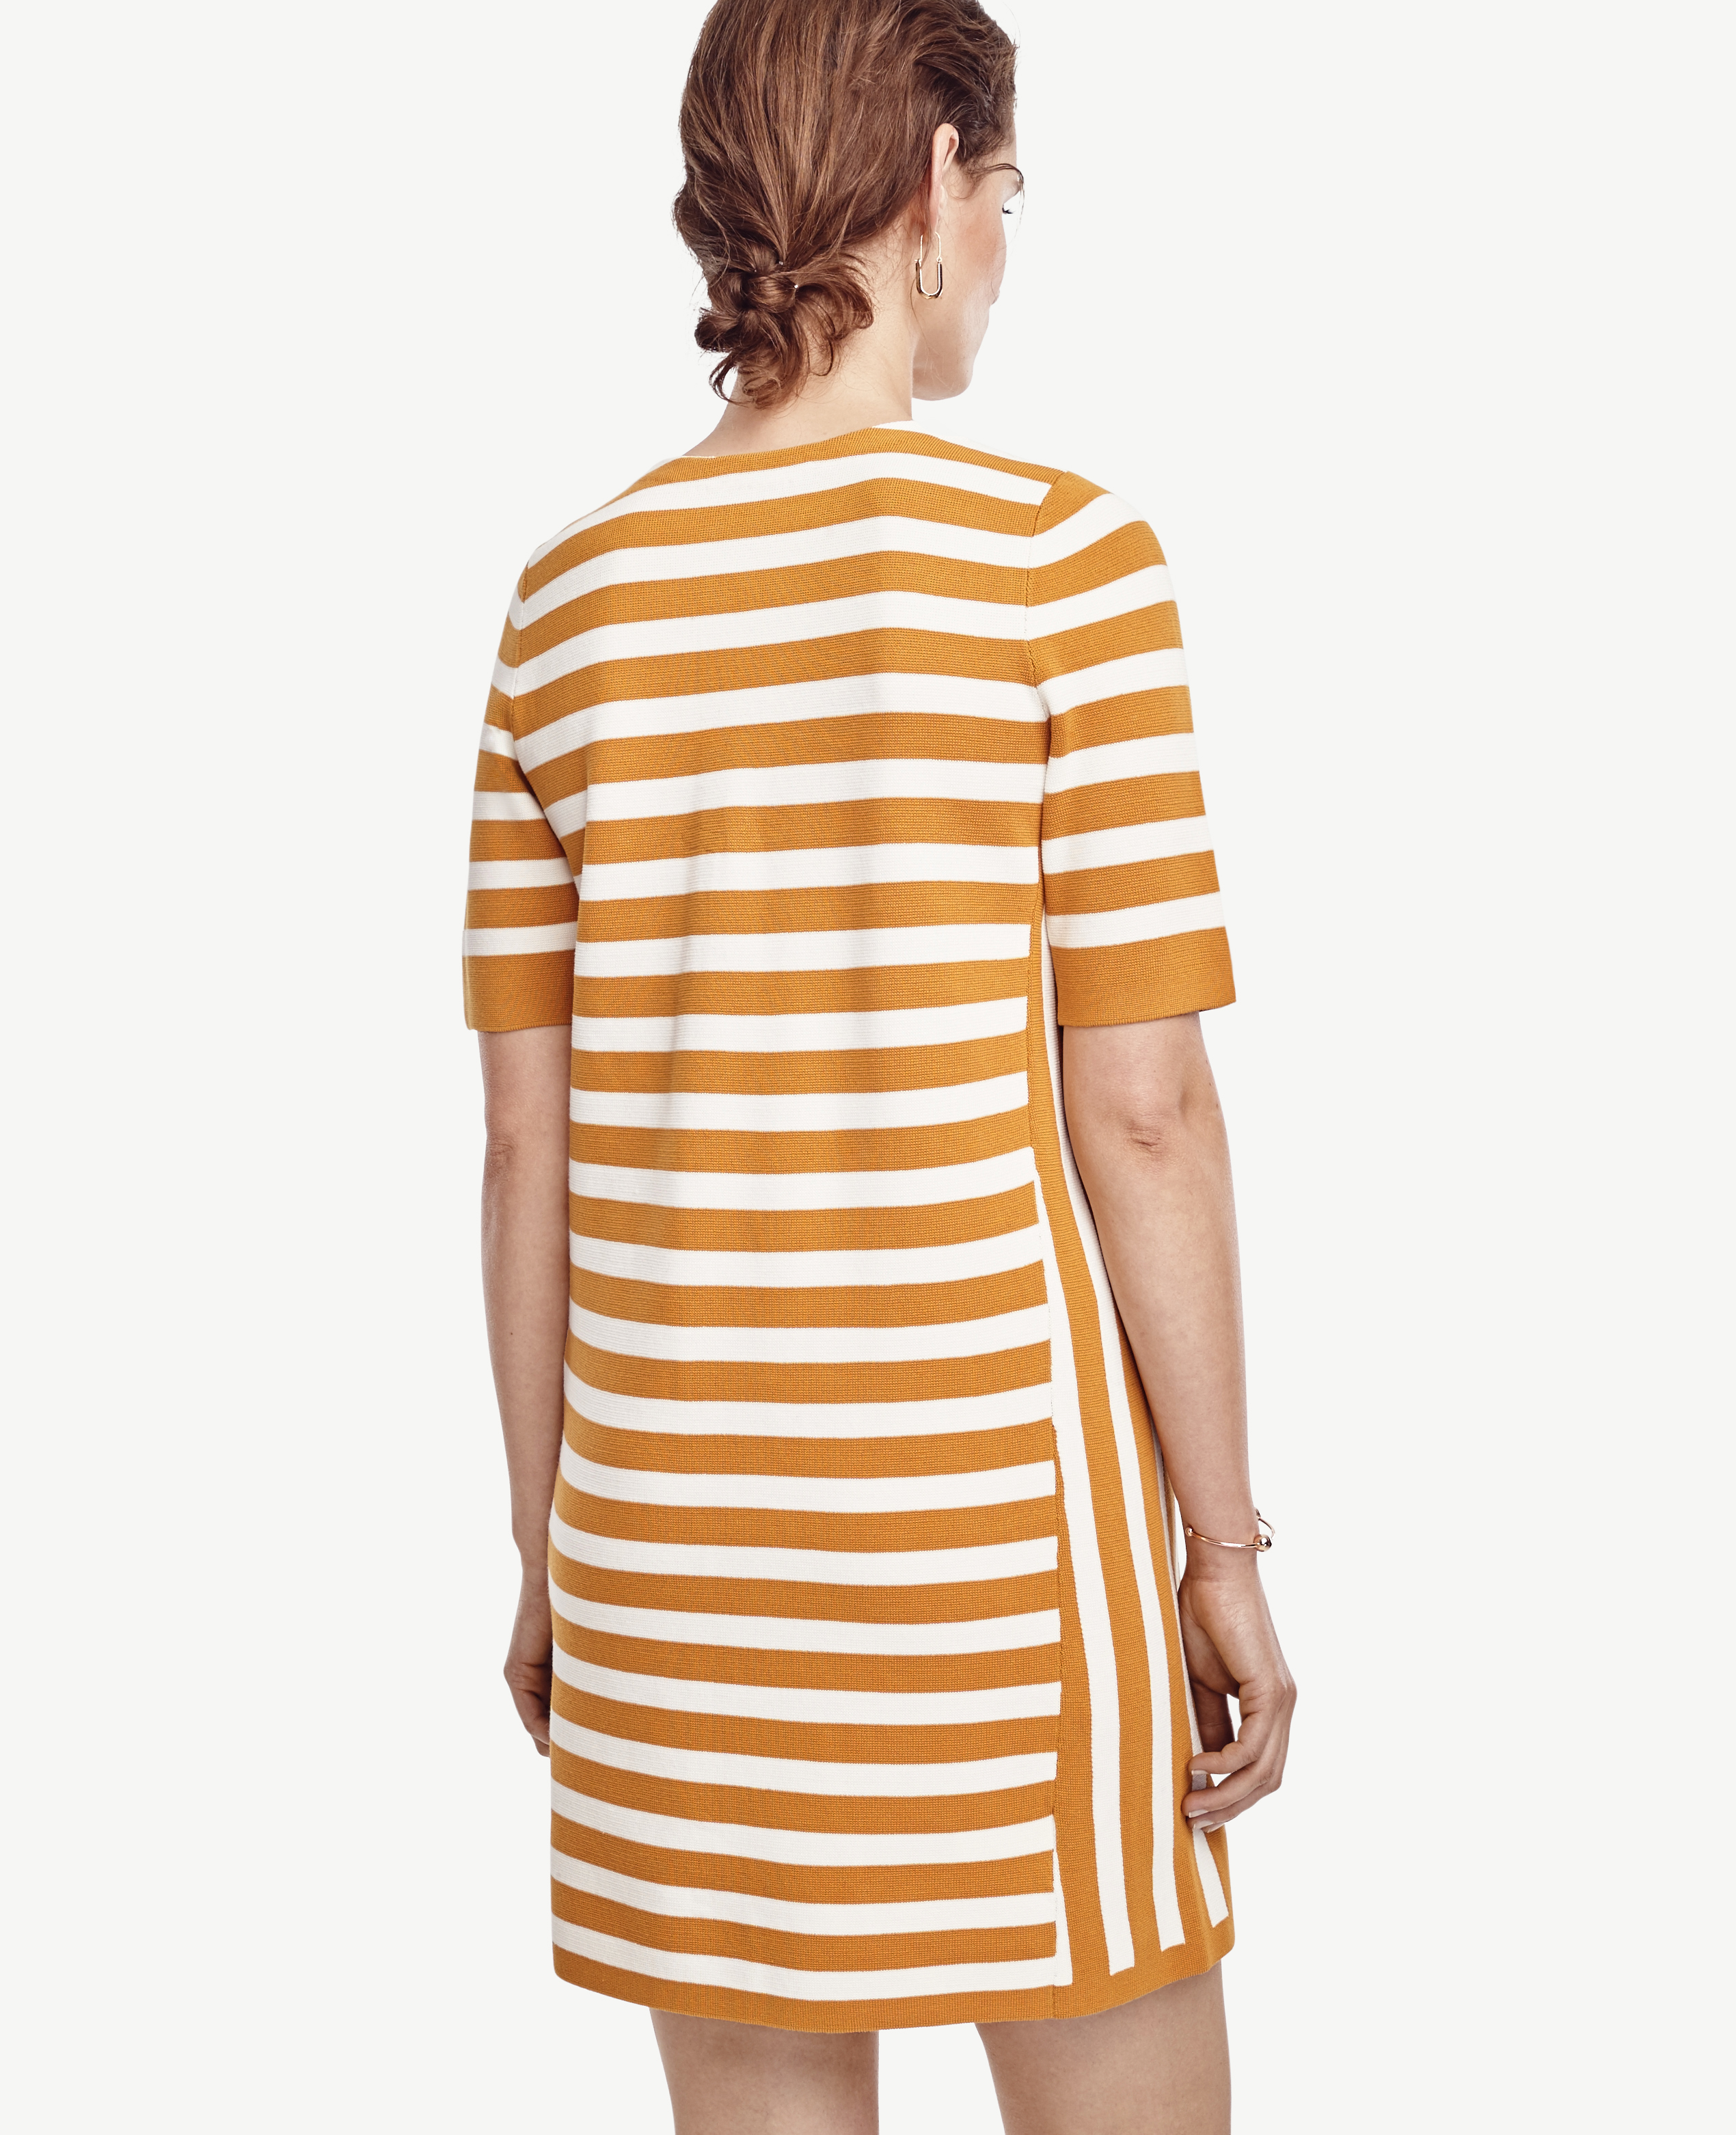 Ann taylor Tall Striped Short Sleeve Sweater Dress in Orange | Lyst